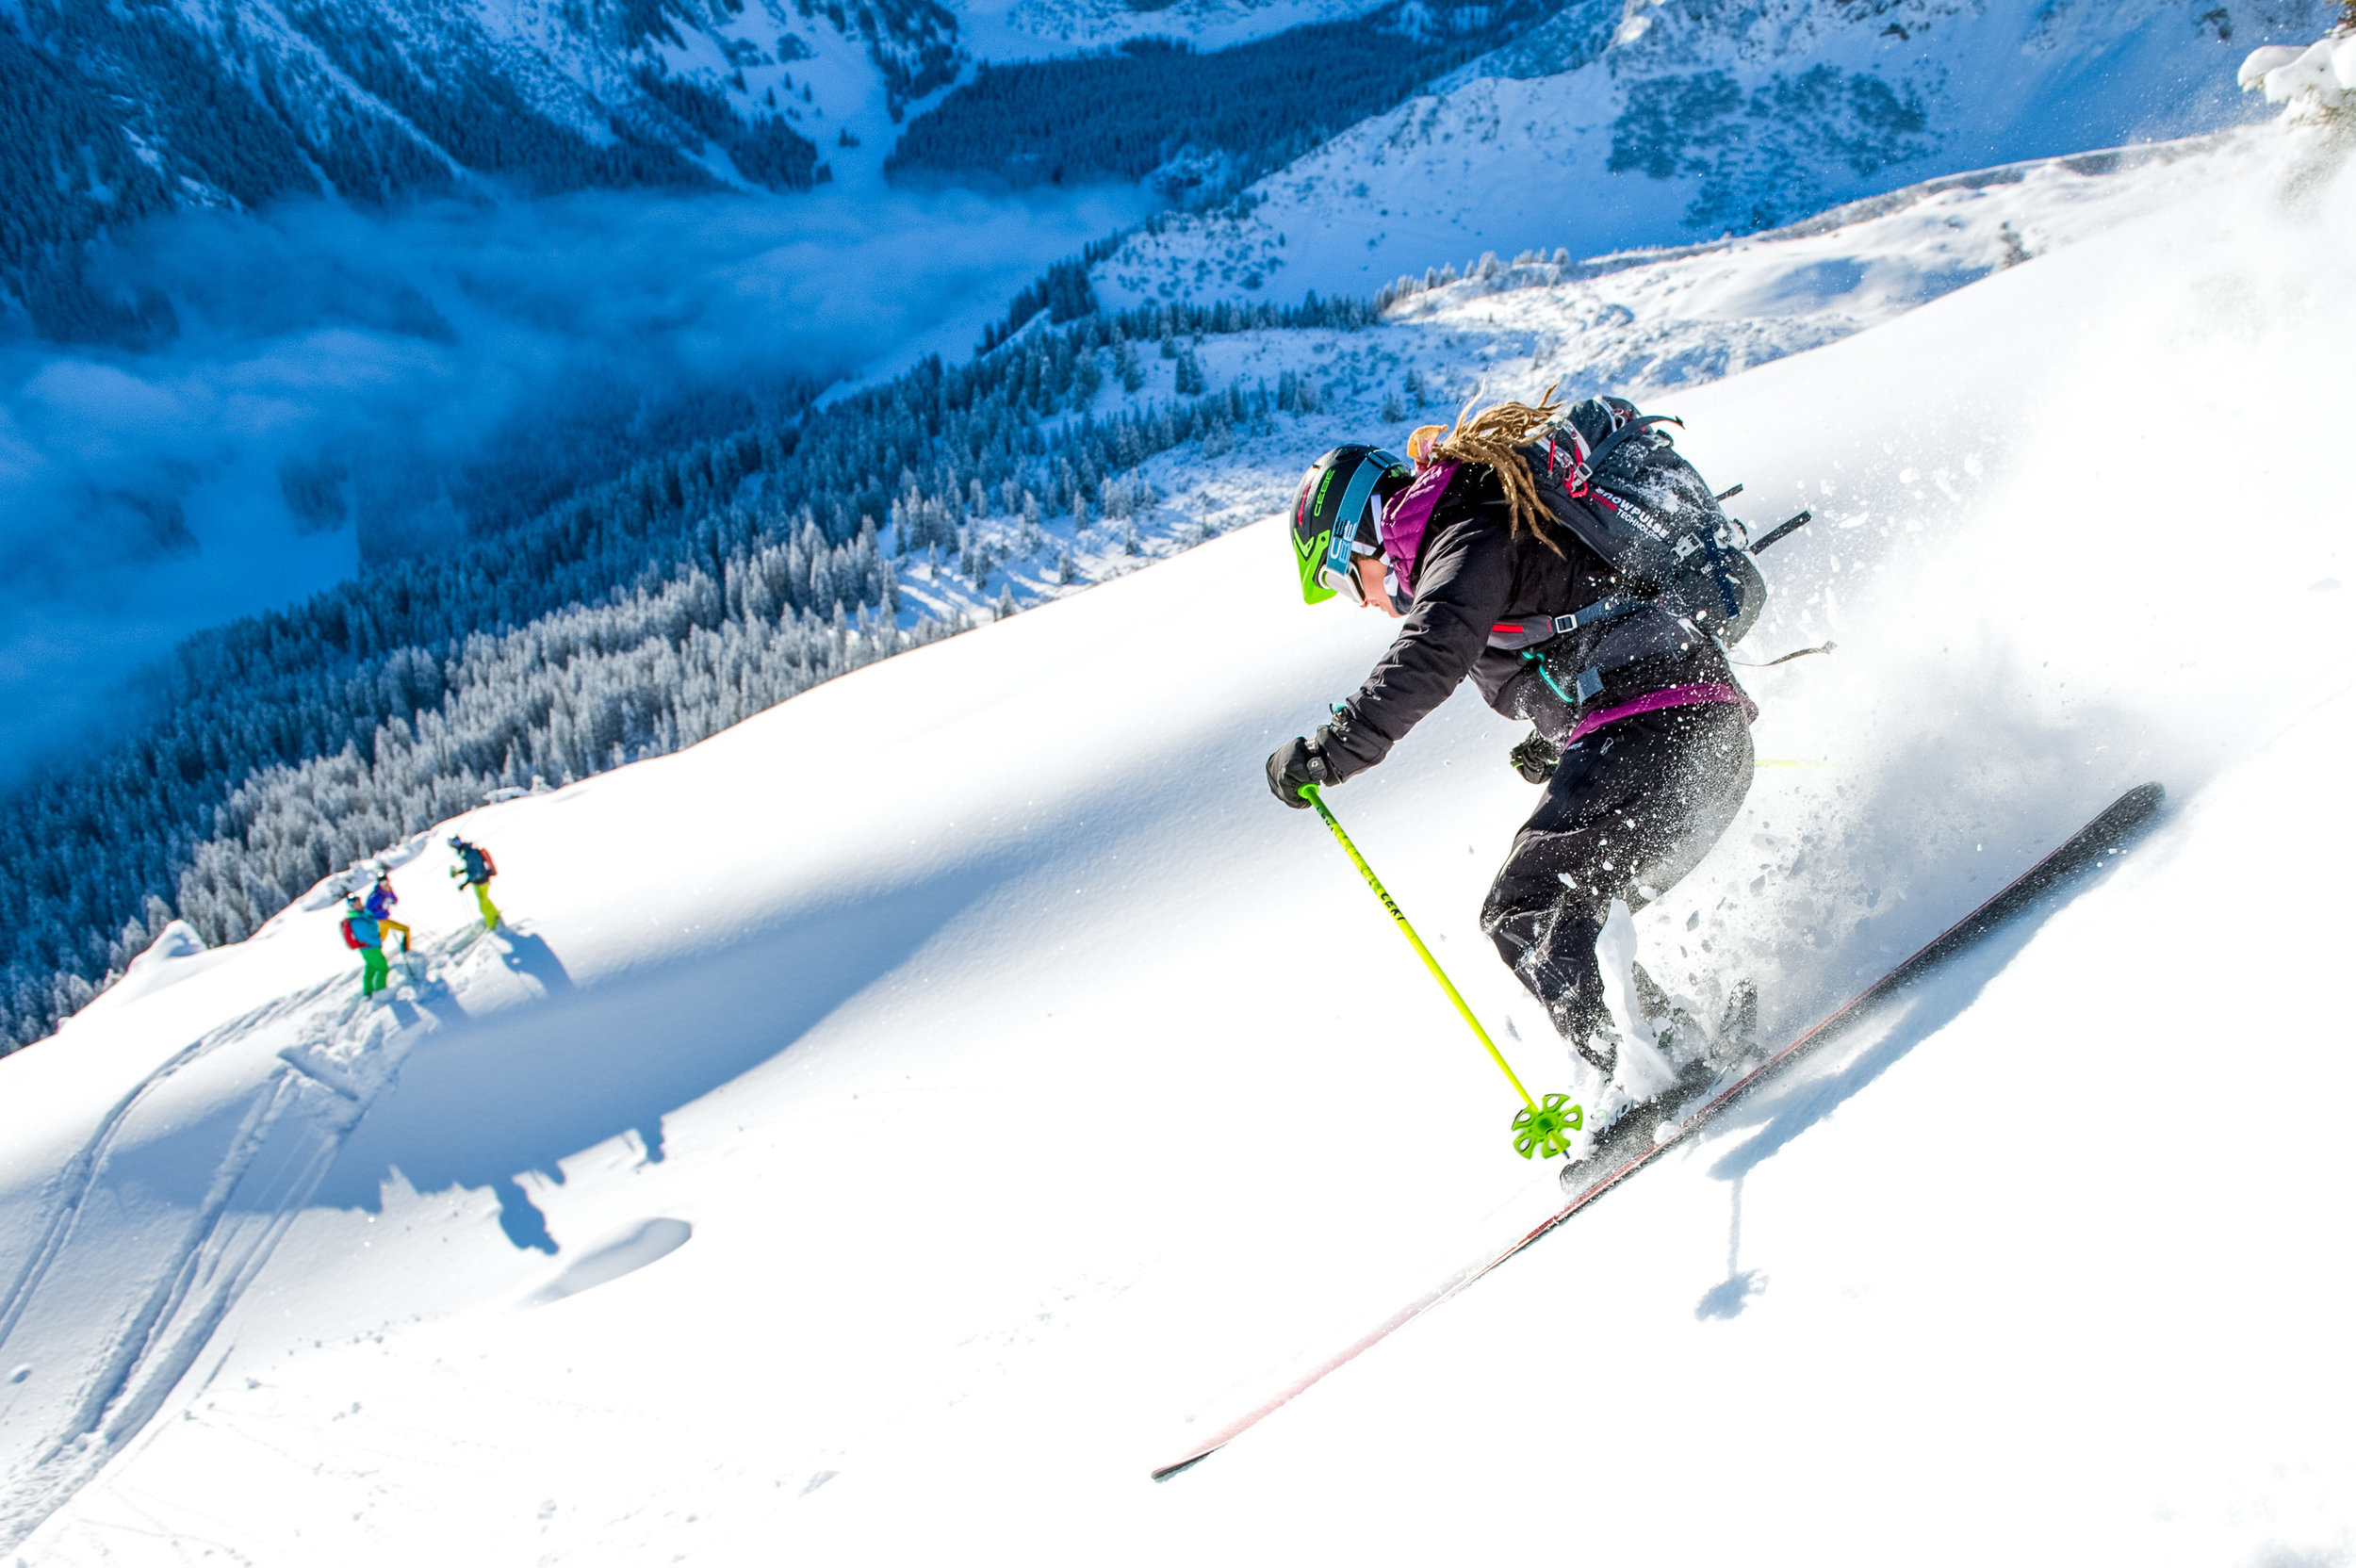 1 day at the Arlberg= 360€/1PAX +30€ each additional Person - 1 day = 4hours + break